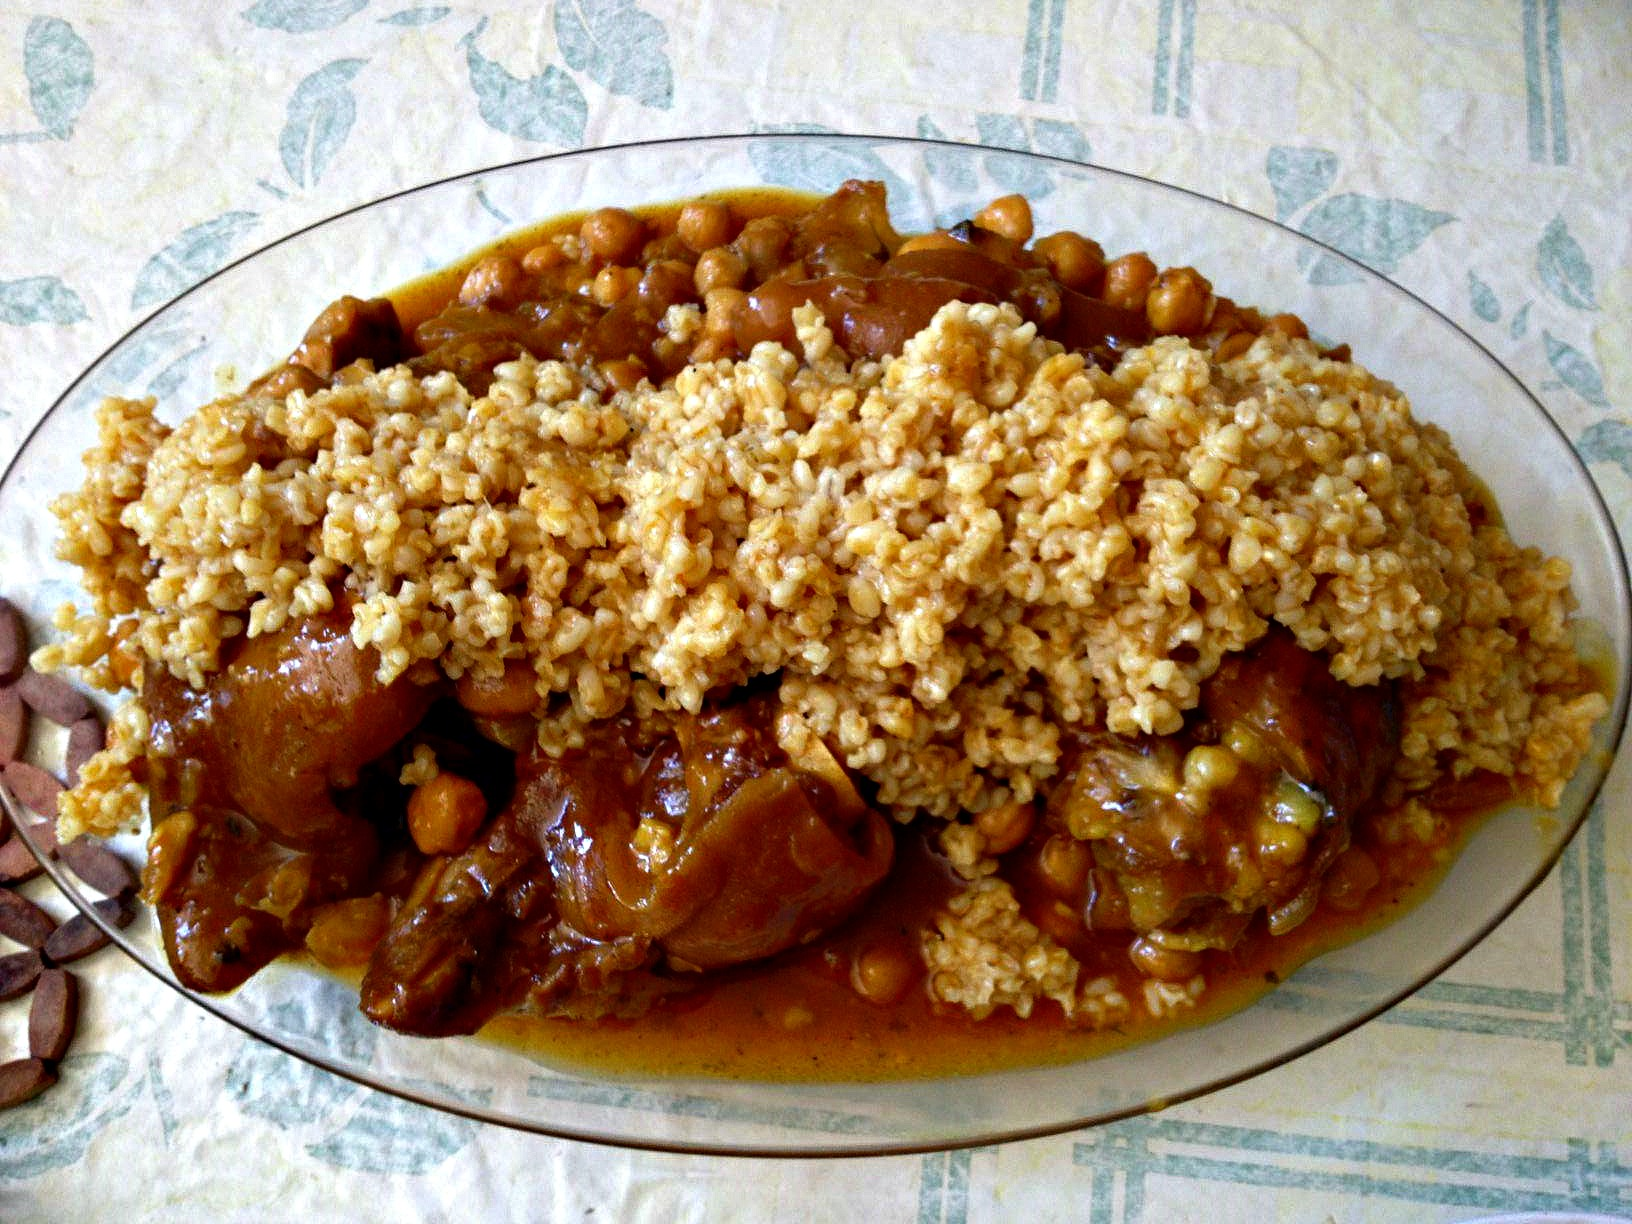 overhead image of a platter of Moroccan trotters and chickpeas topped by a garnish of wheat berries